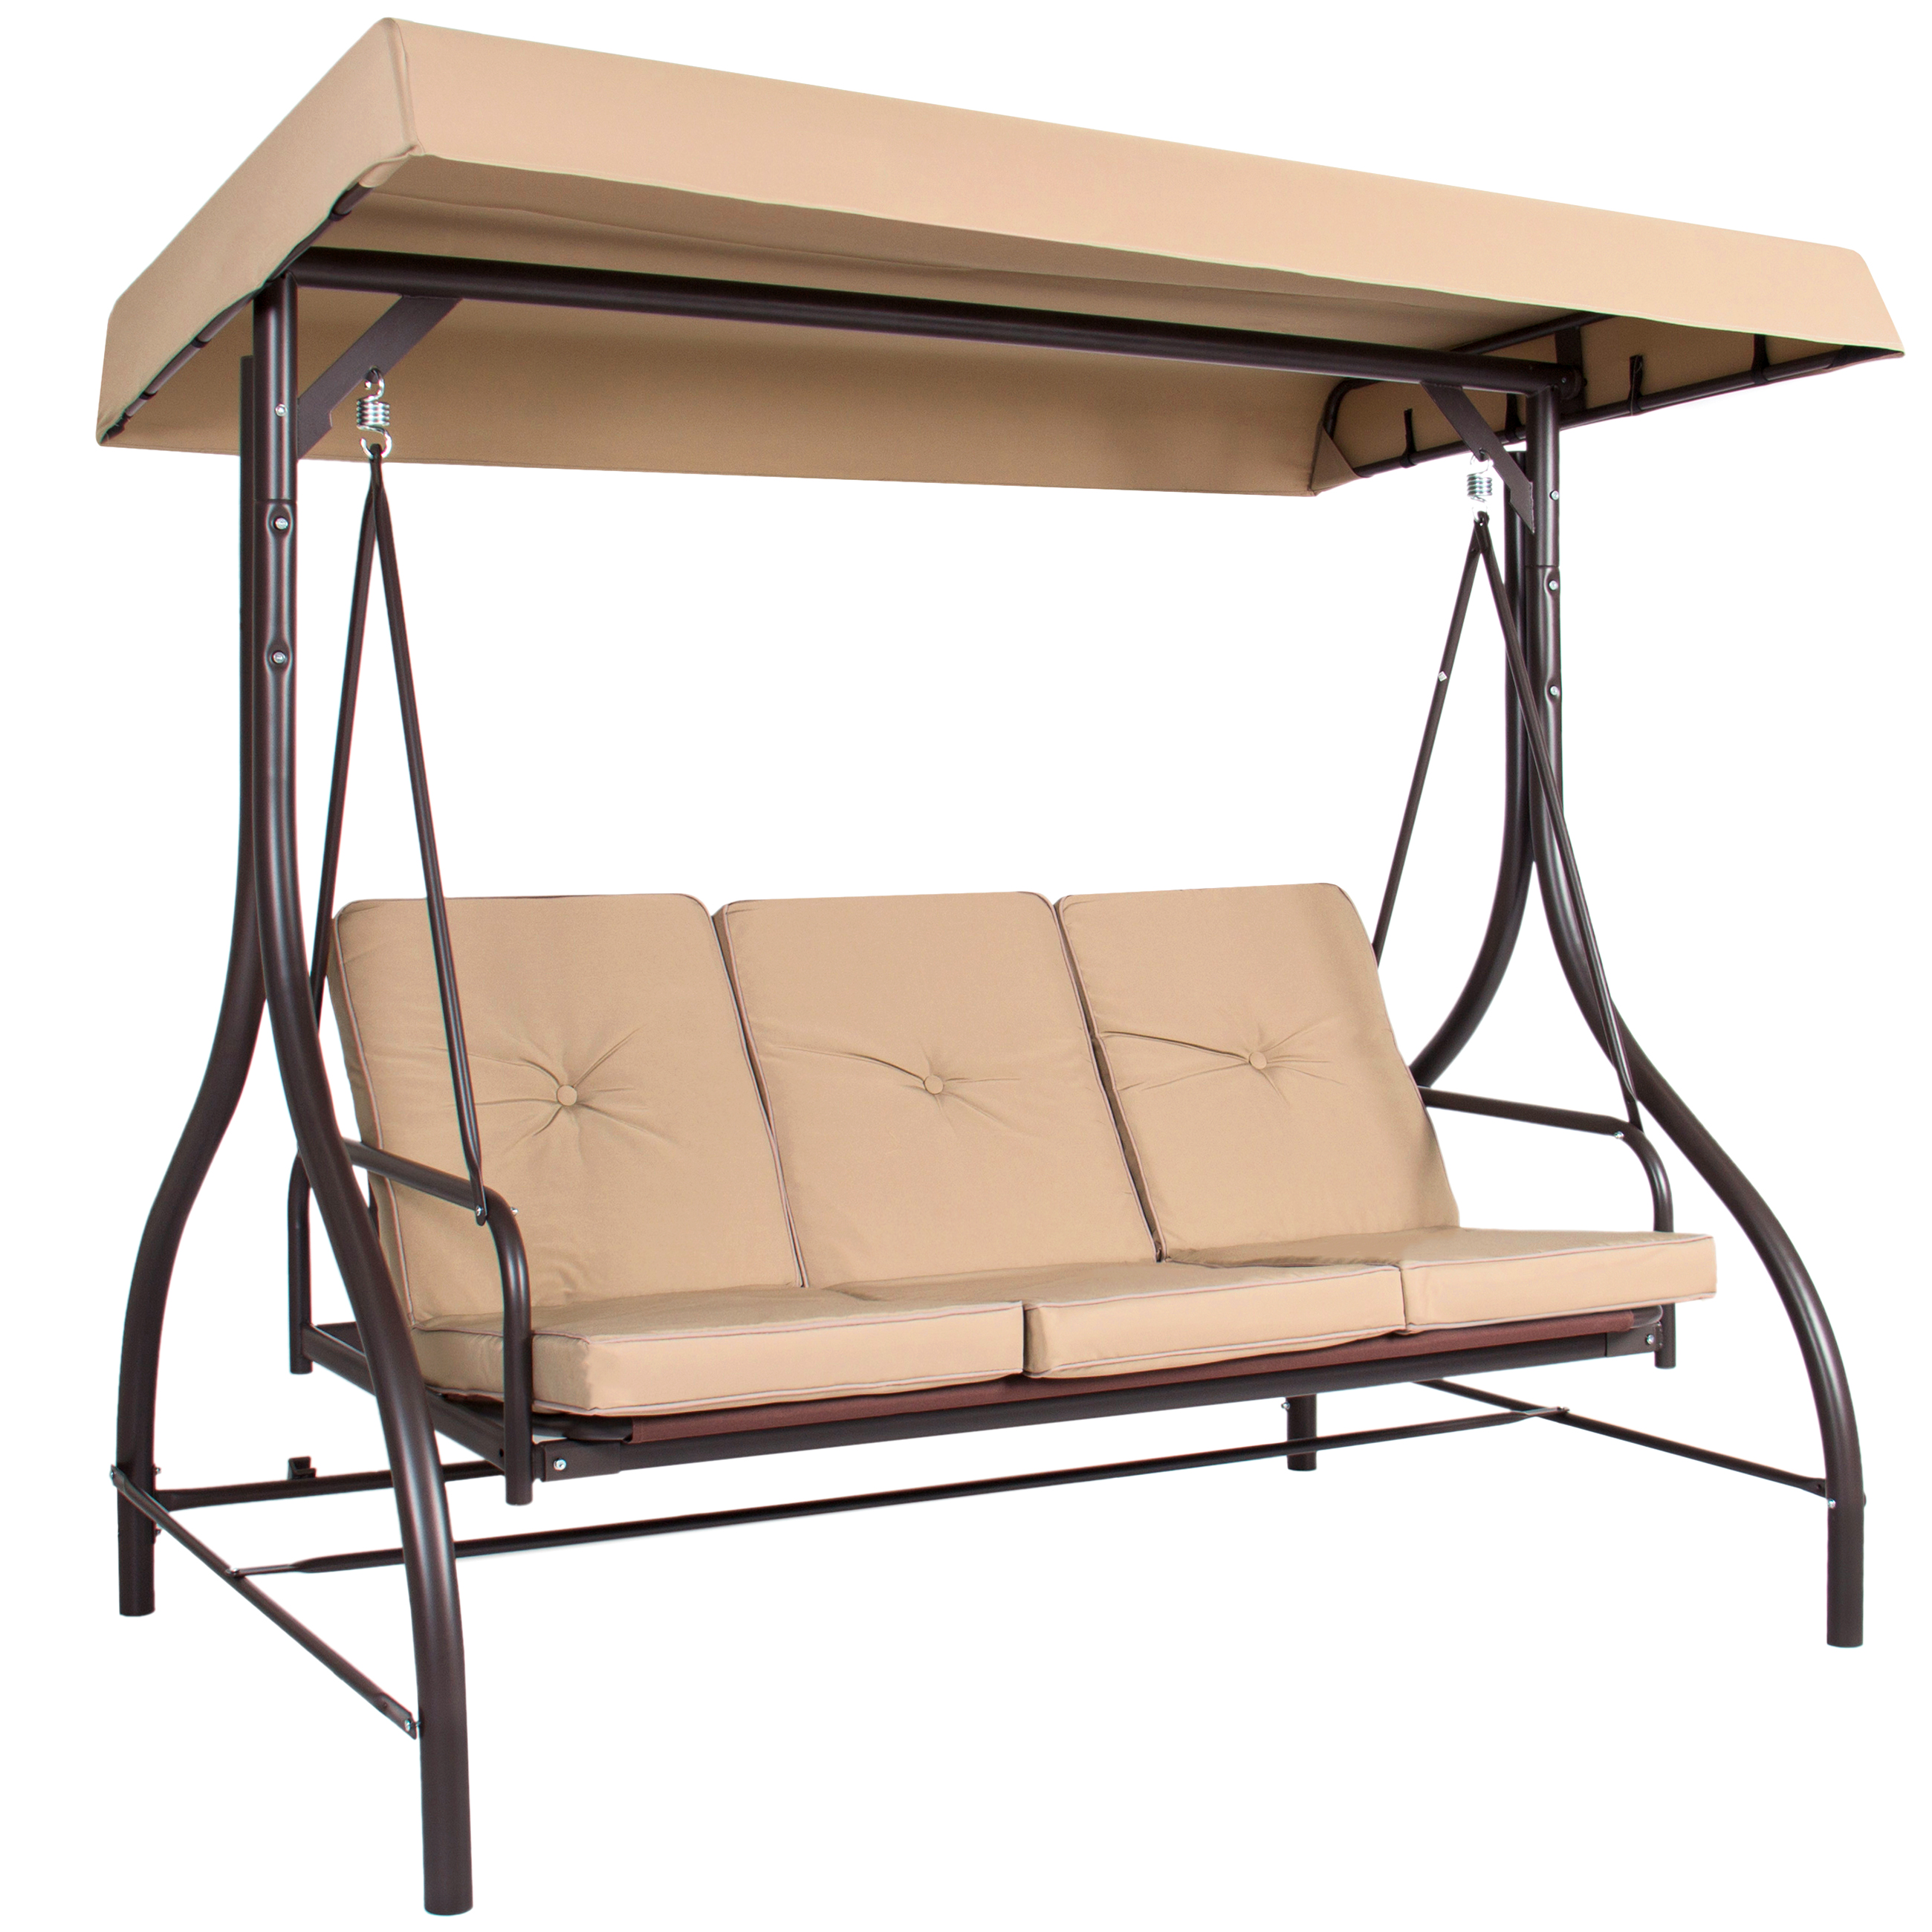 Best Choice Products Converting Outdoor Swing Canopy Hammock Seats 3 Patio Deck Furniture by SKY